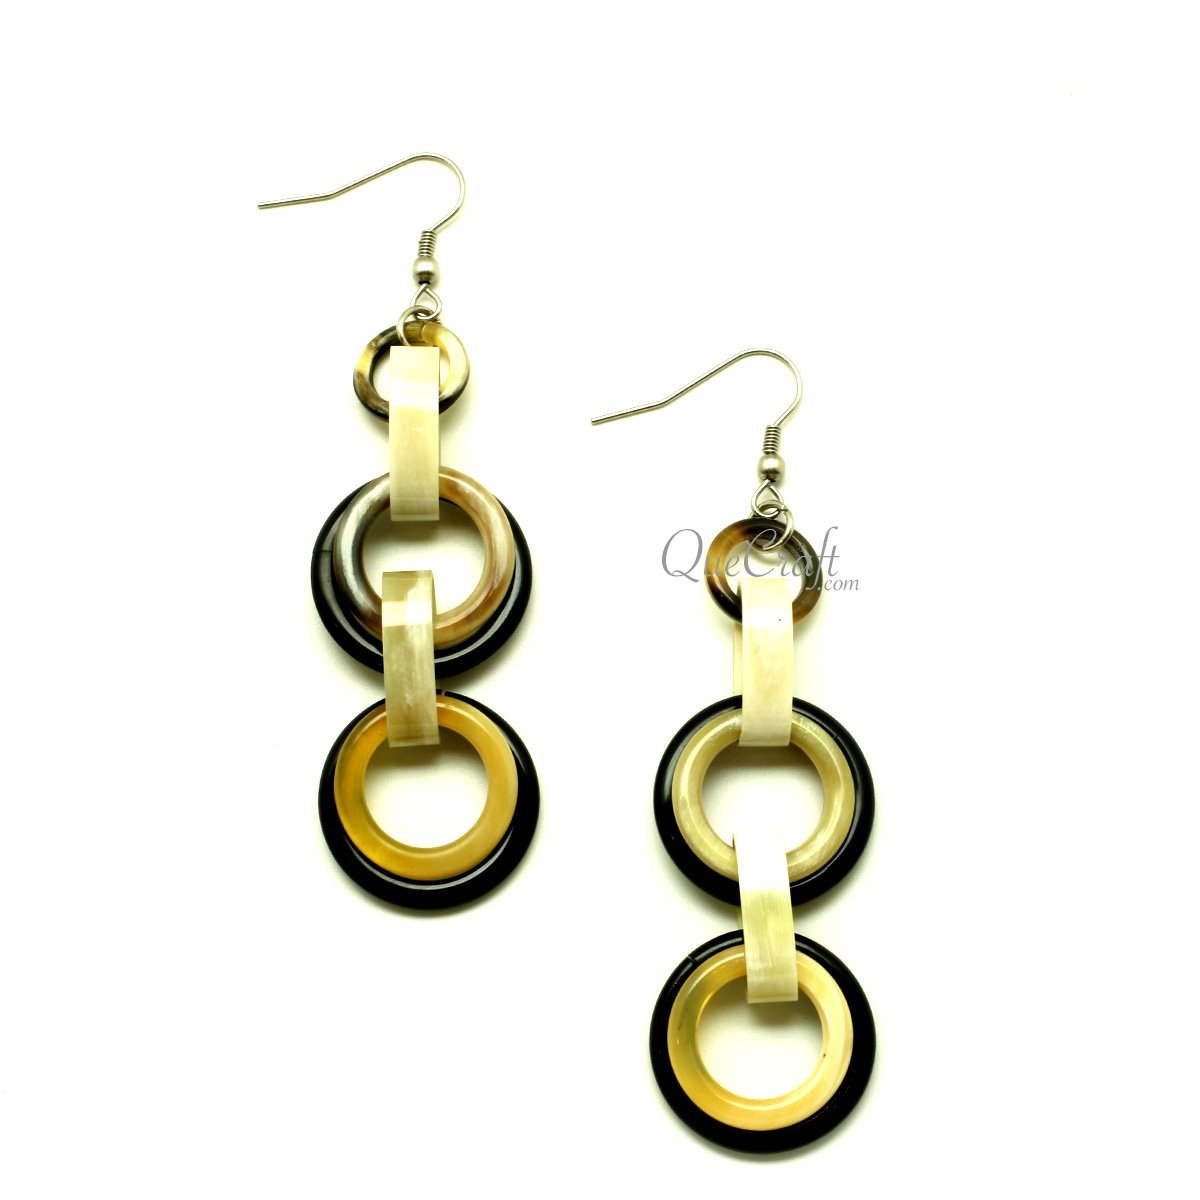 Horn Earrings #13415 - HORN.JEWELRY by QueCraft